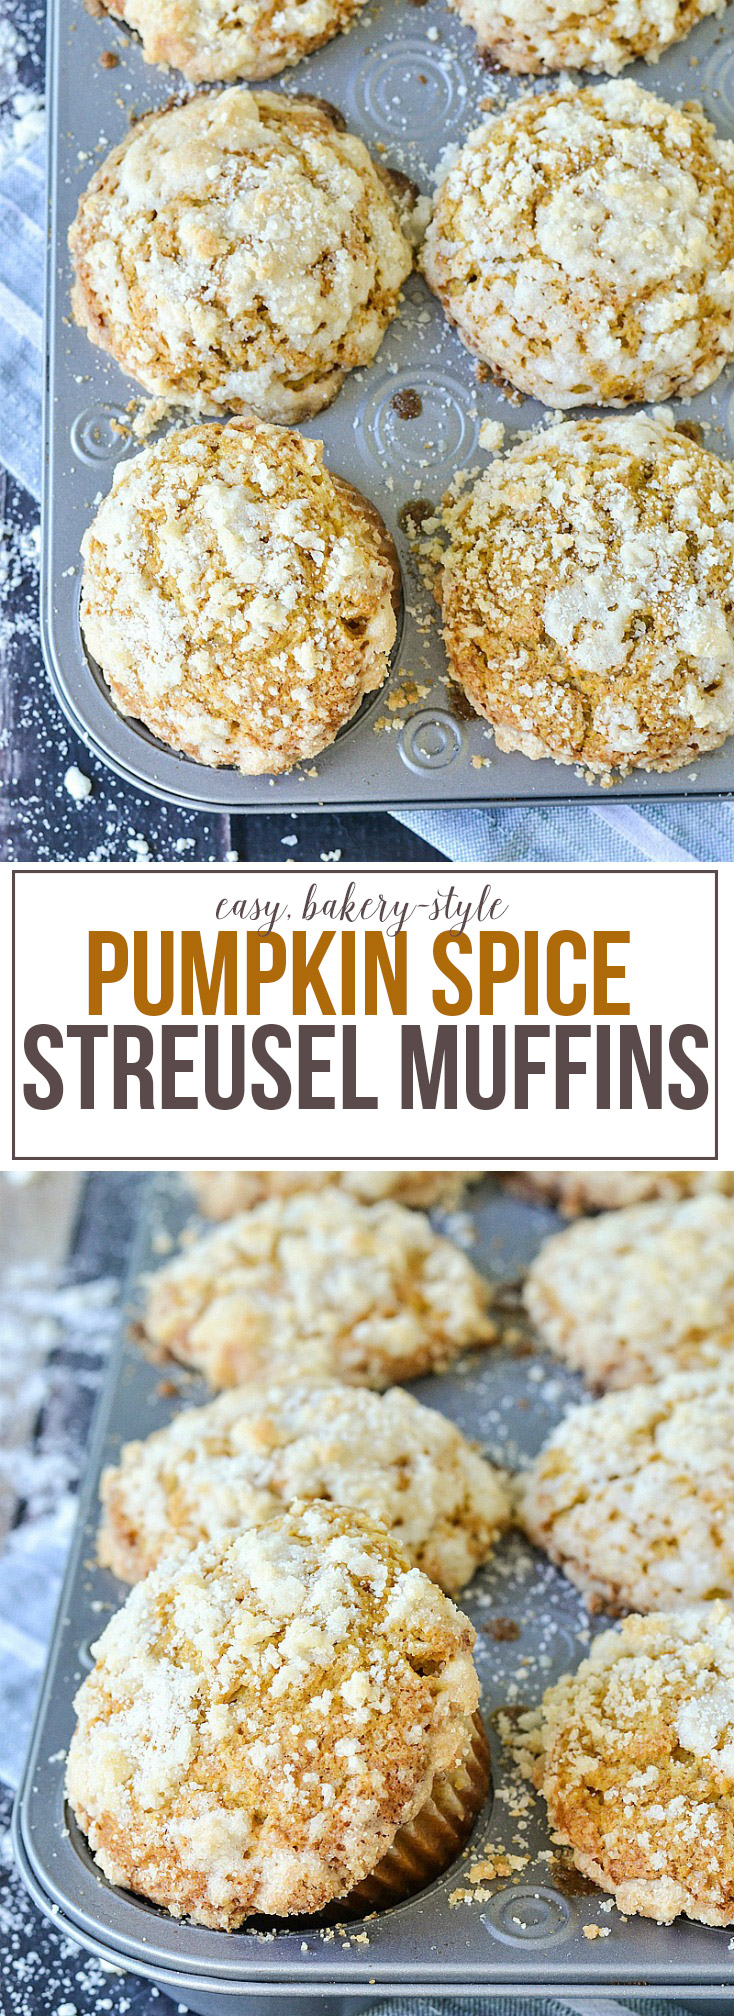 Pumpkin Spice Streusel Muffins from www.motherthyme.com